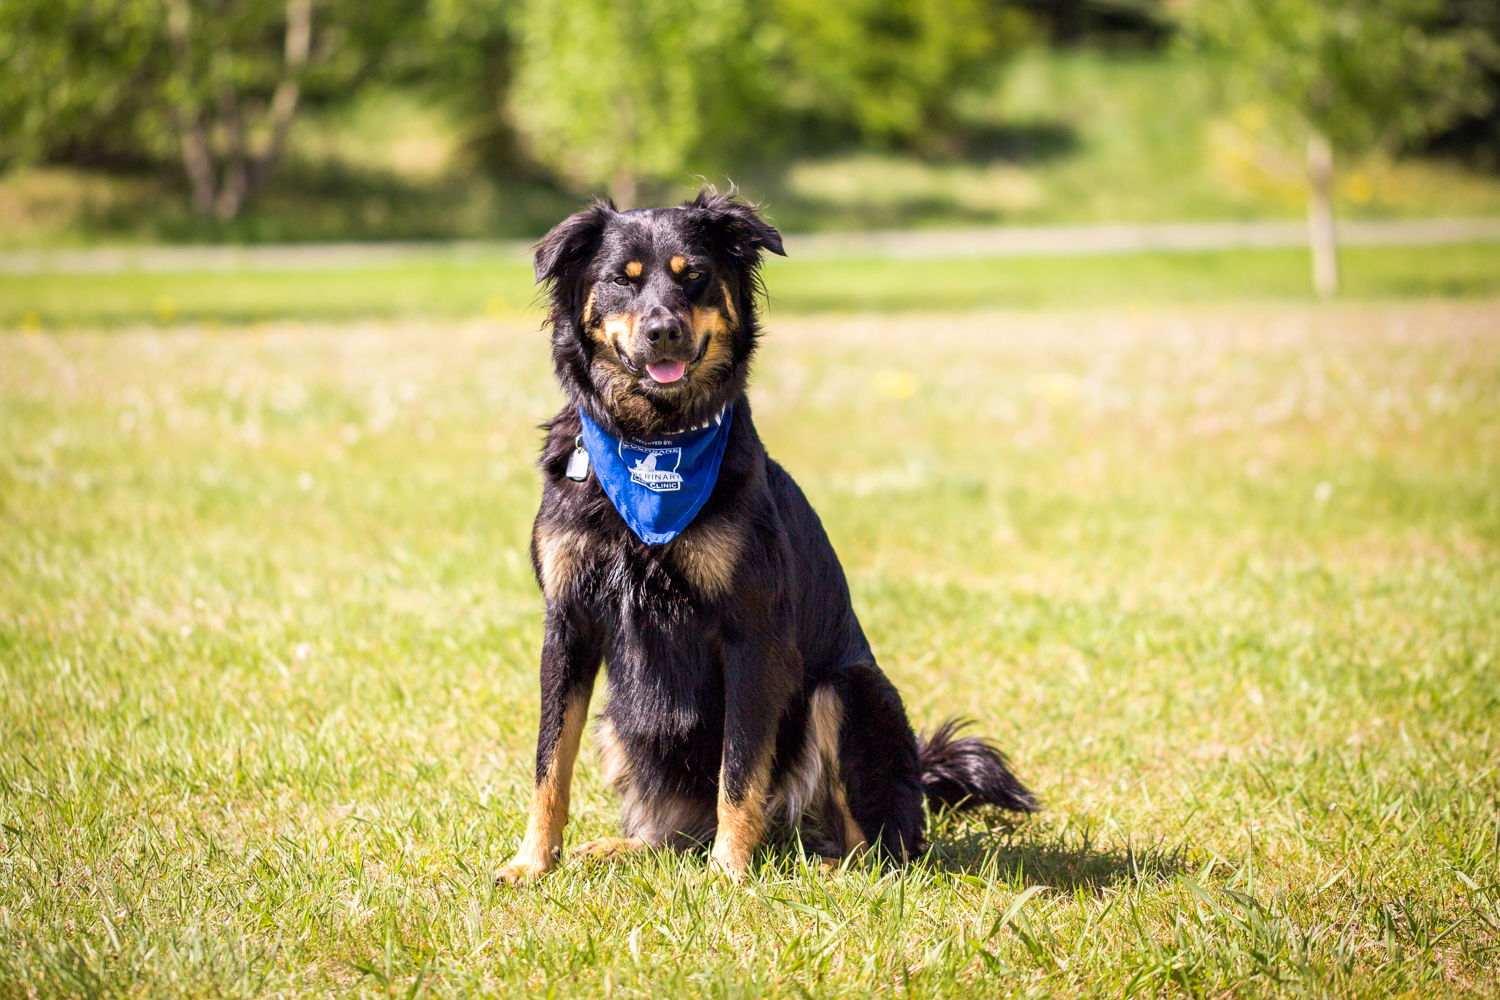 The_Dog_with_a_Bow_Photography_Cochrane_Humane_Mutt_Strut-4.jpg